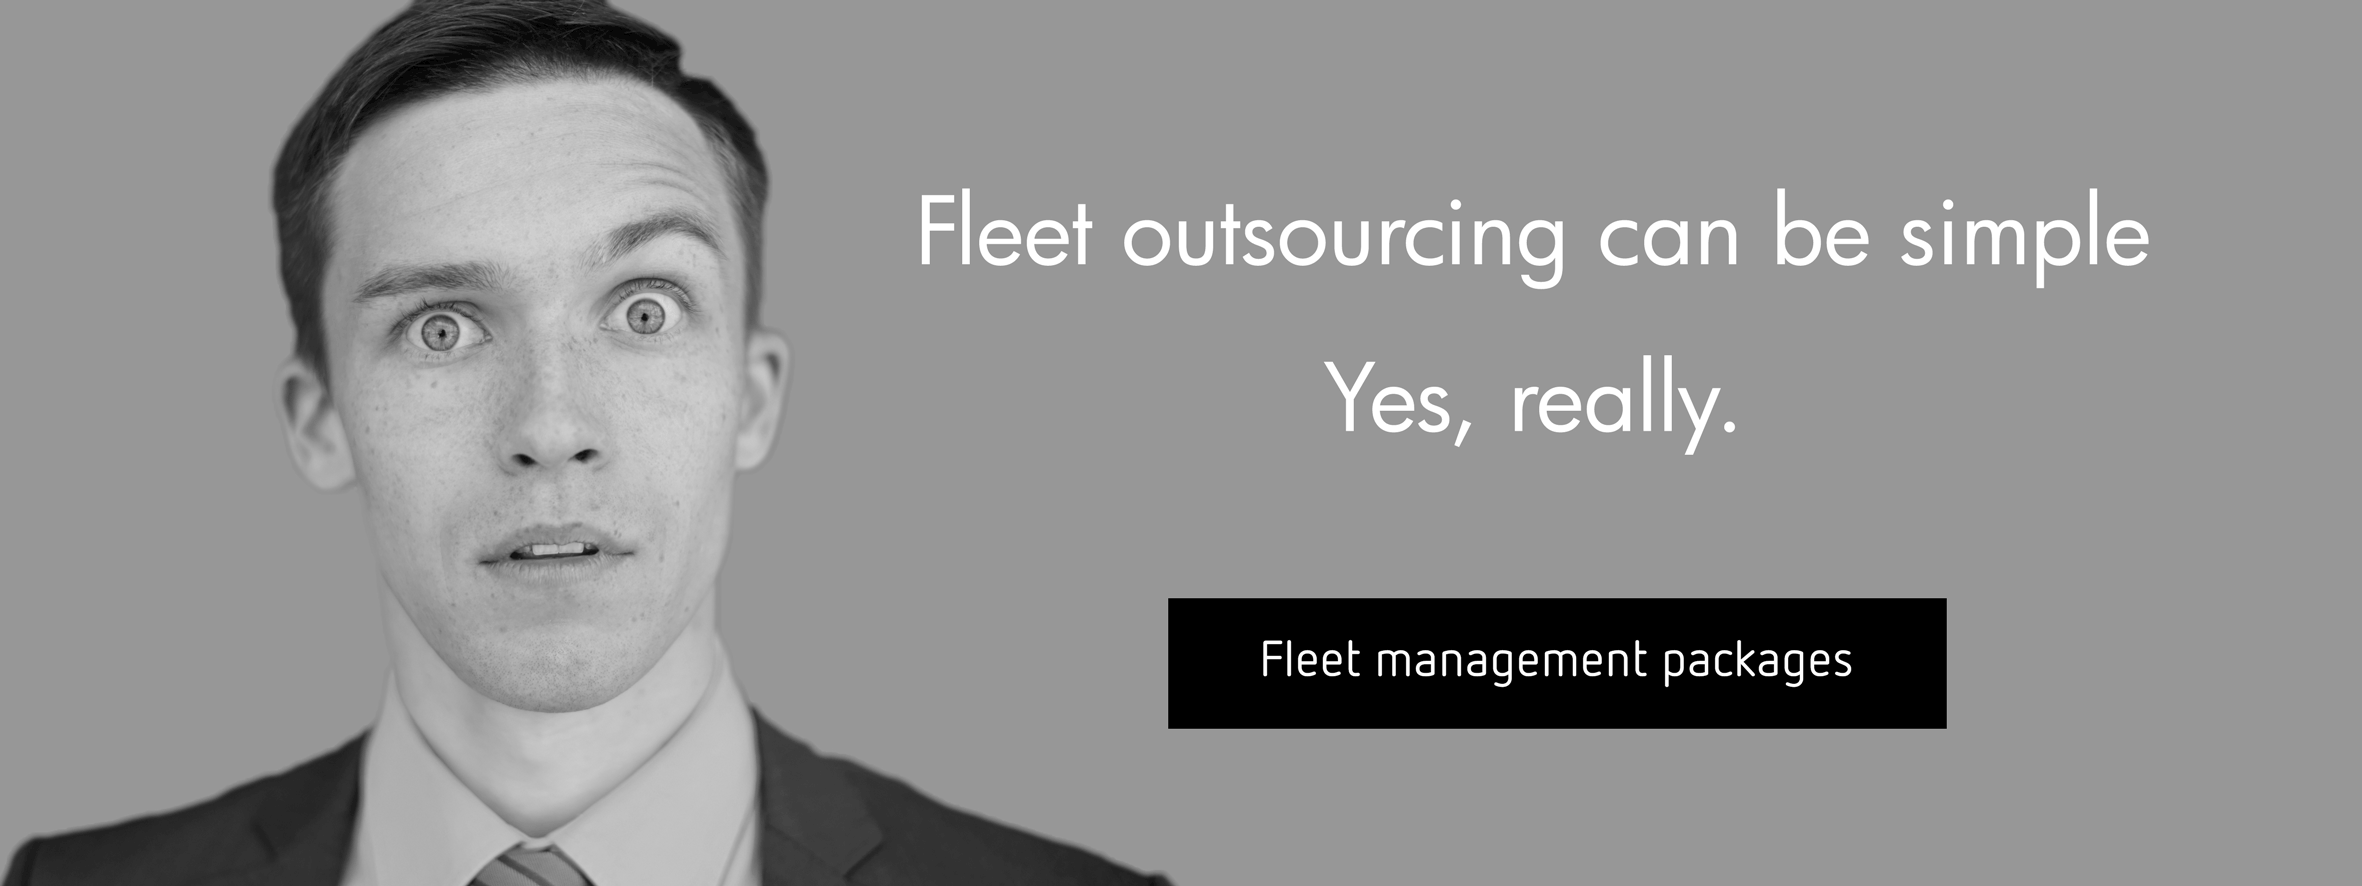 UK fleet management outsourcing for company cars